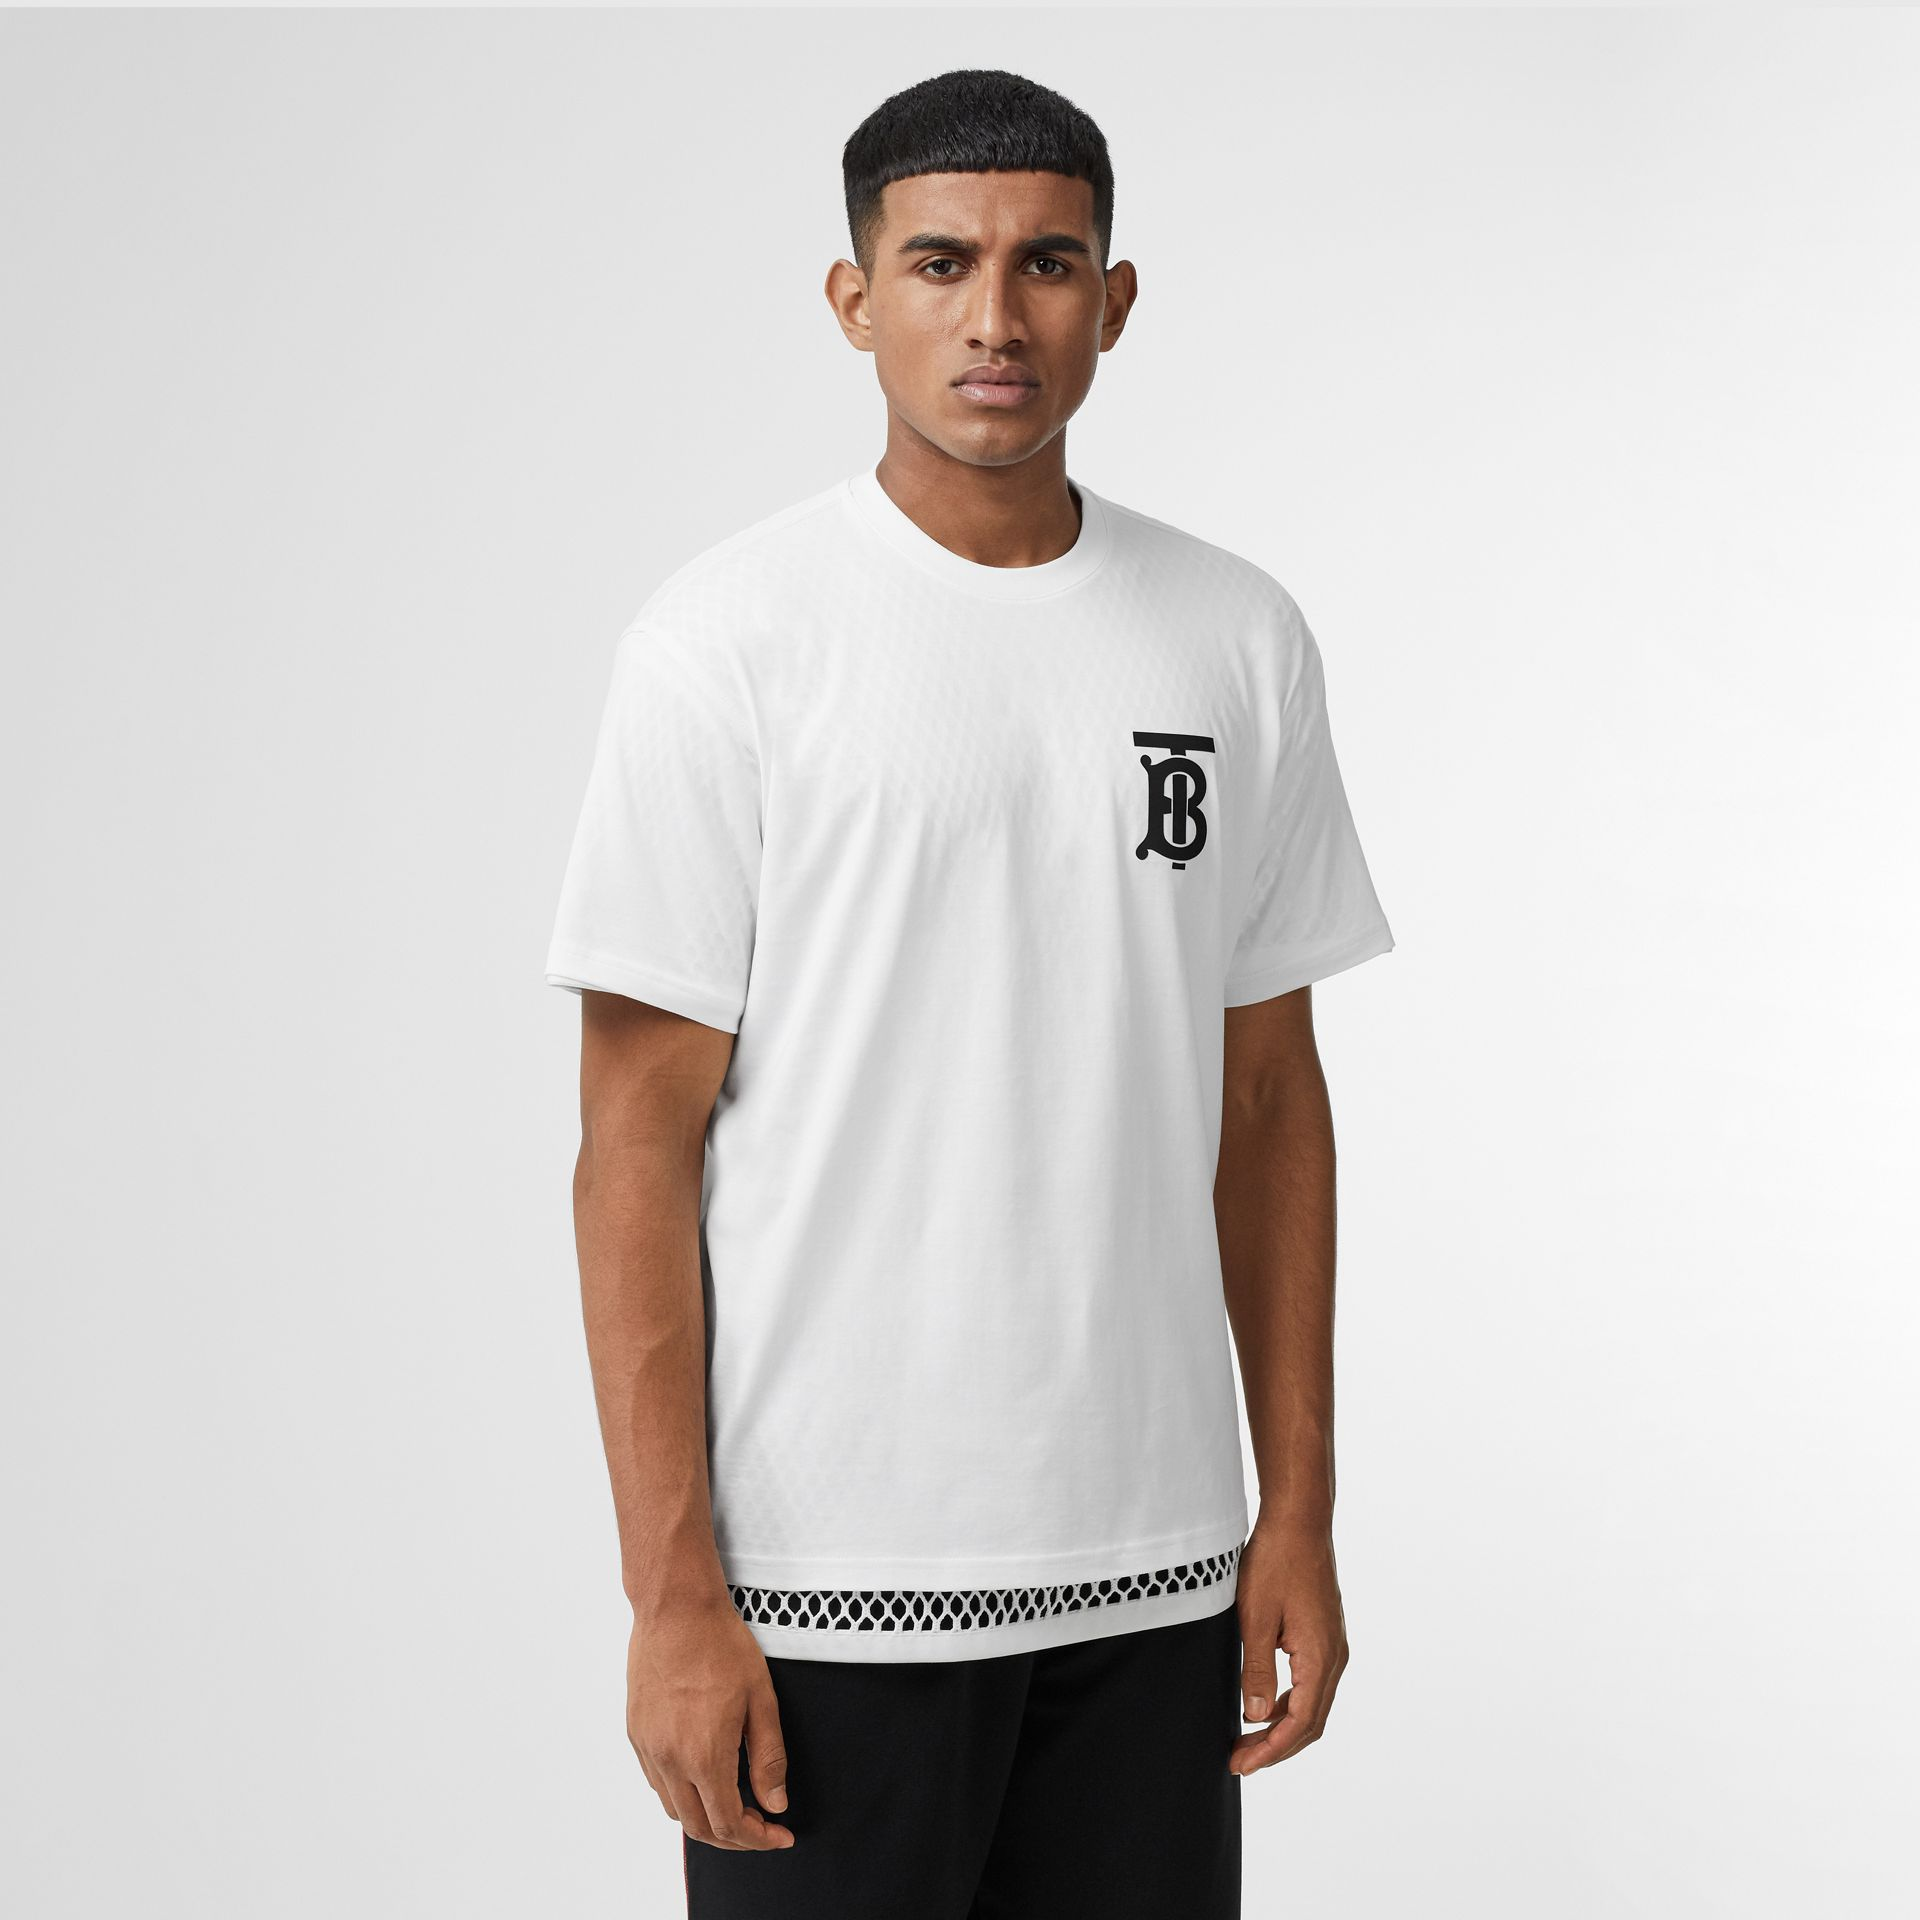 Monogram Motif Cotton Oversized T-shirt in White | Burberry - gallery image 4